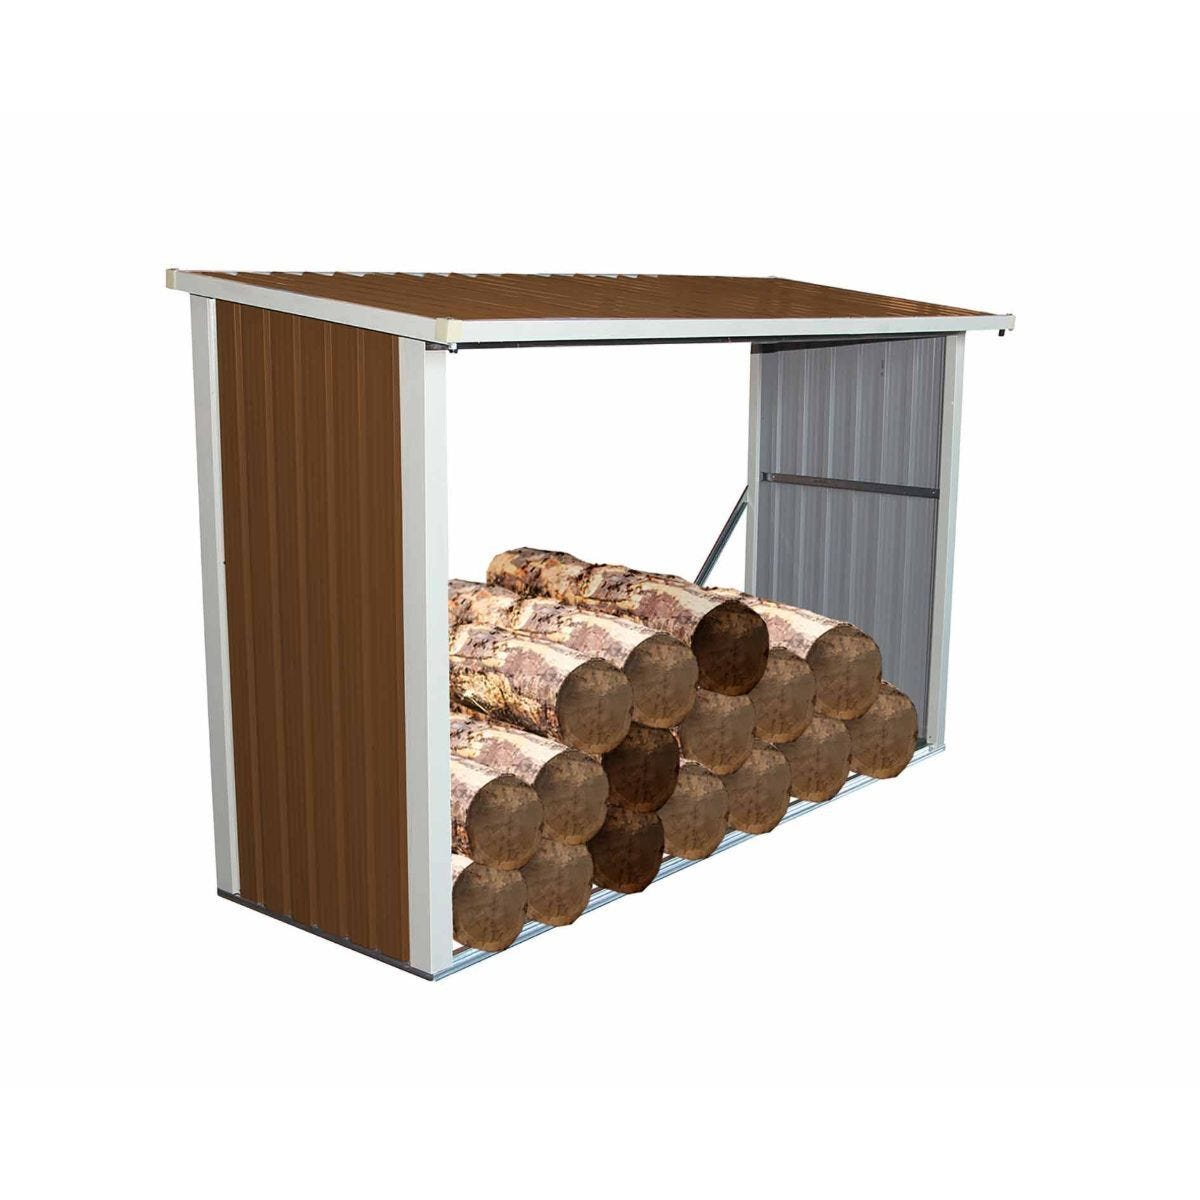 Charles Bentley Metal Log Stores 8x3ft